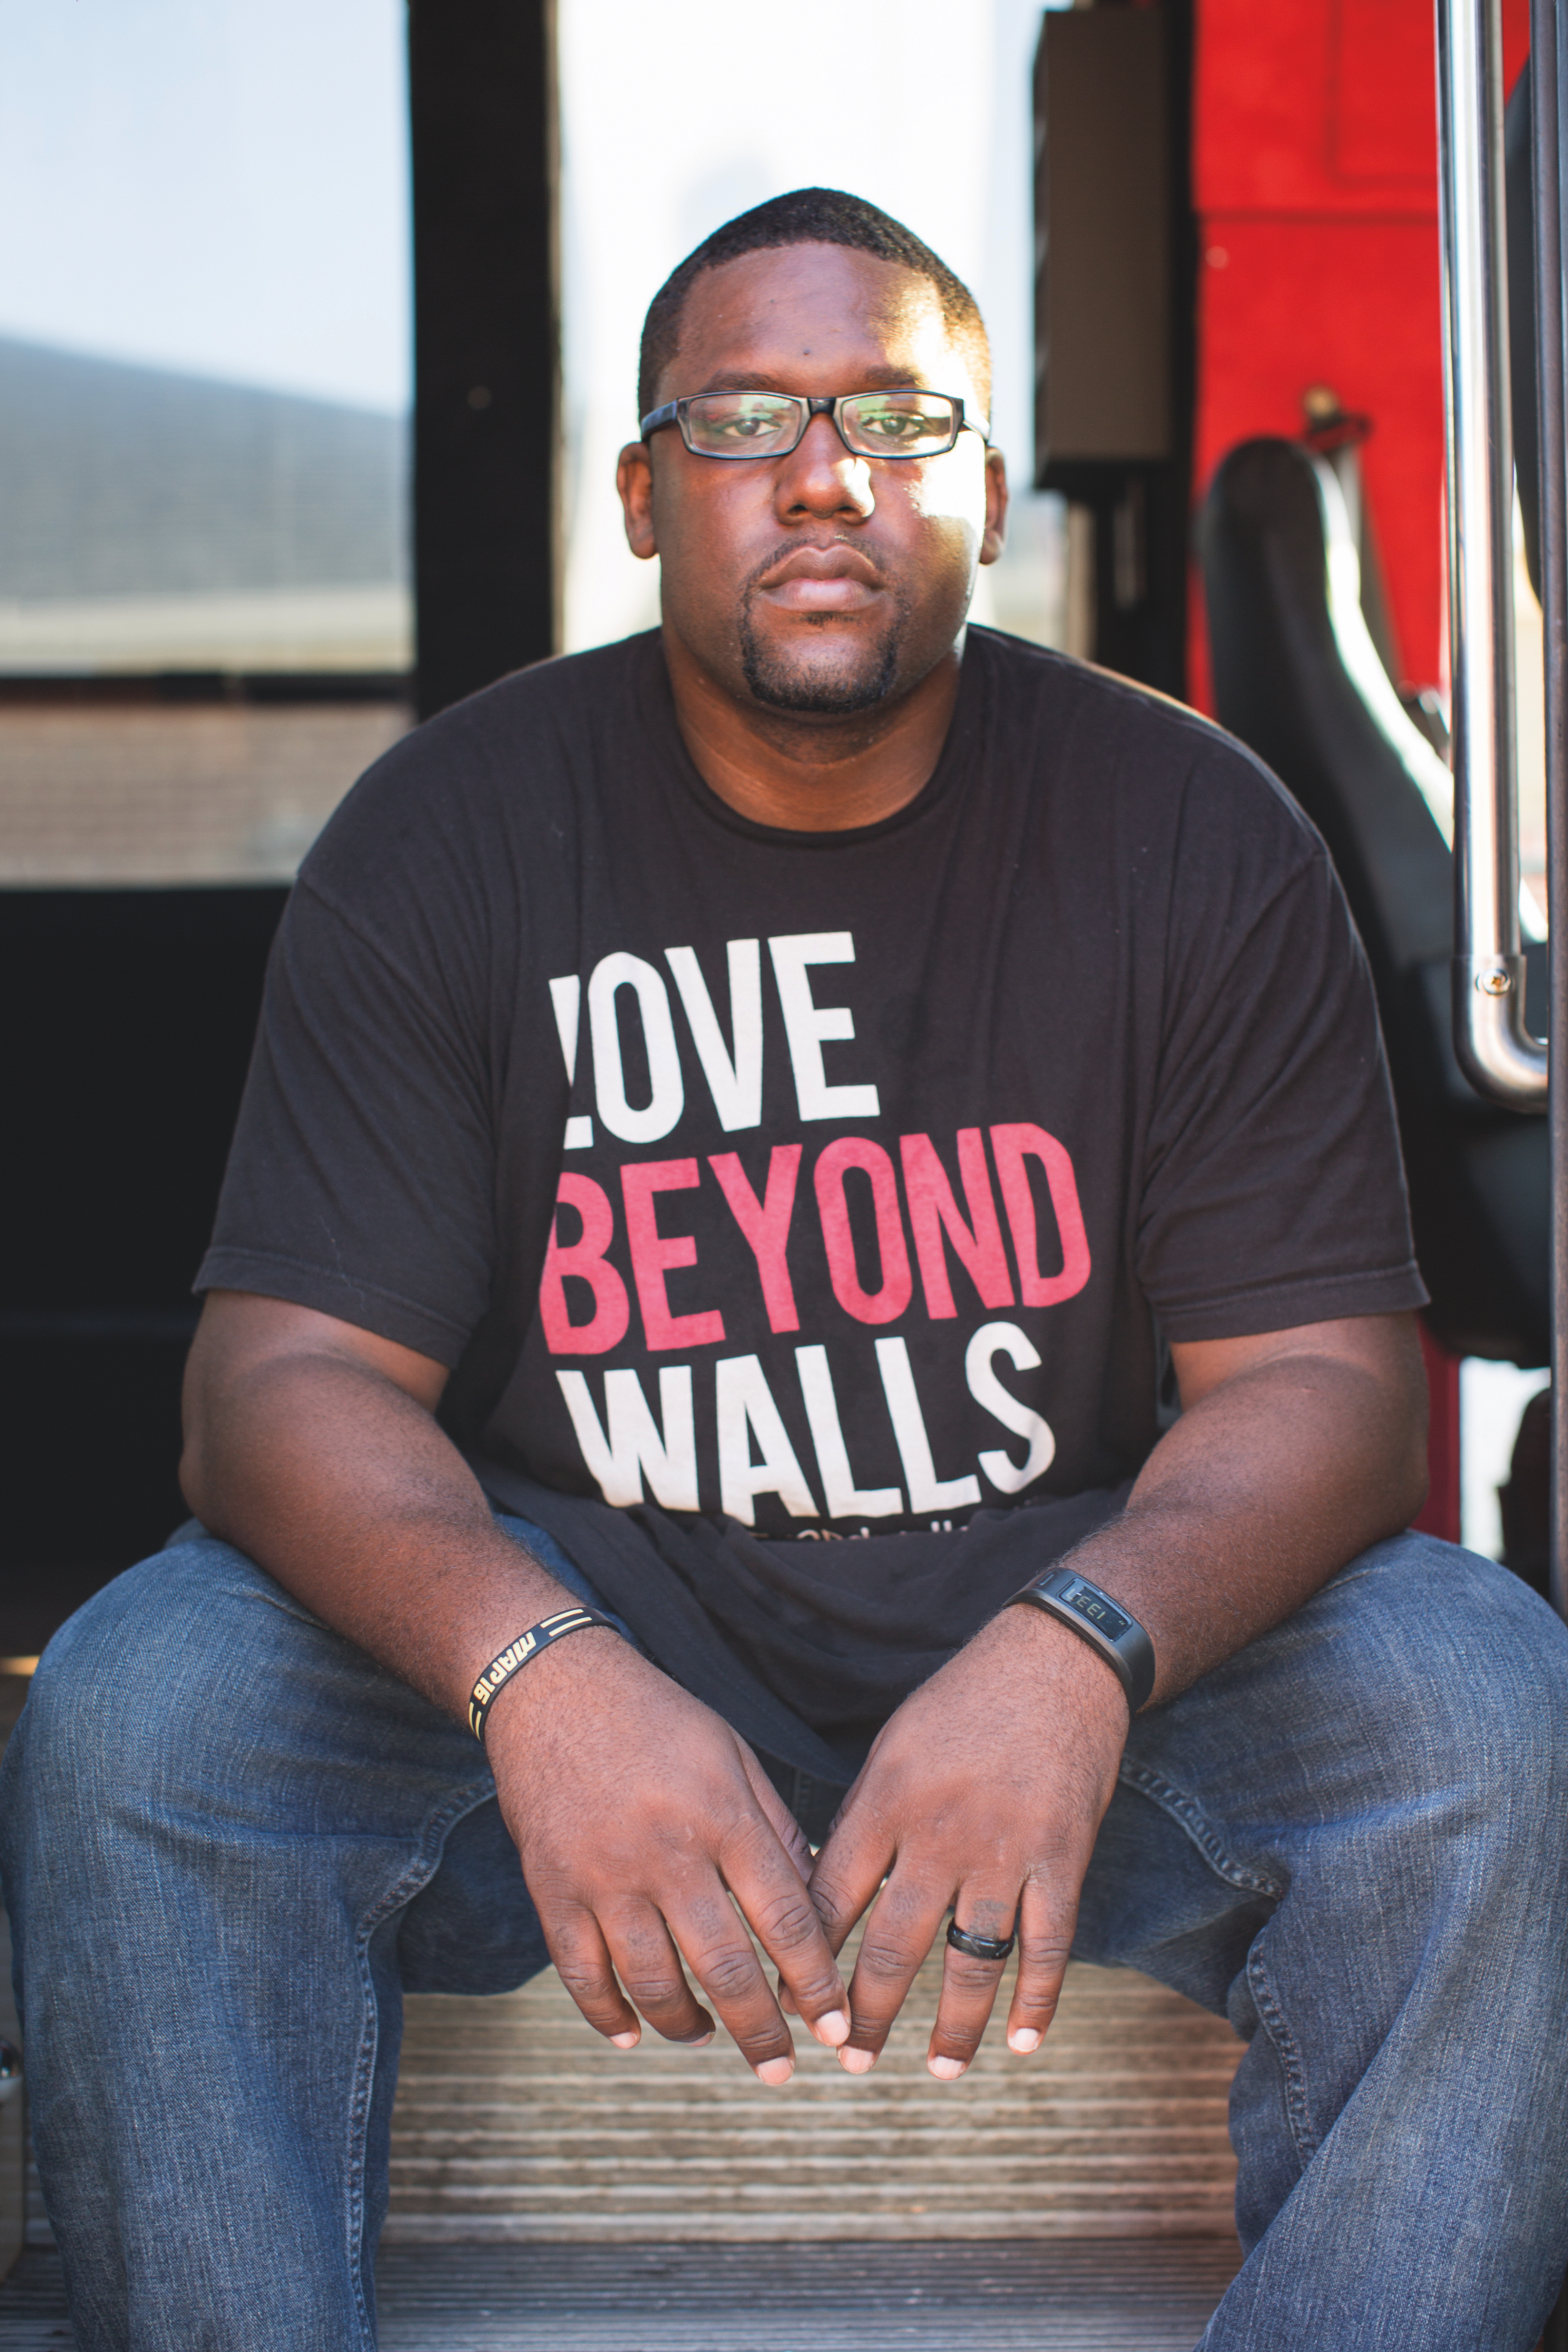 ABOVE: Terence Lester founder of Love Beyond Walls, sits on the steps of the orginization's mobile babershop.